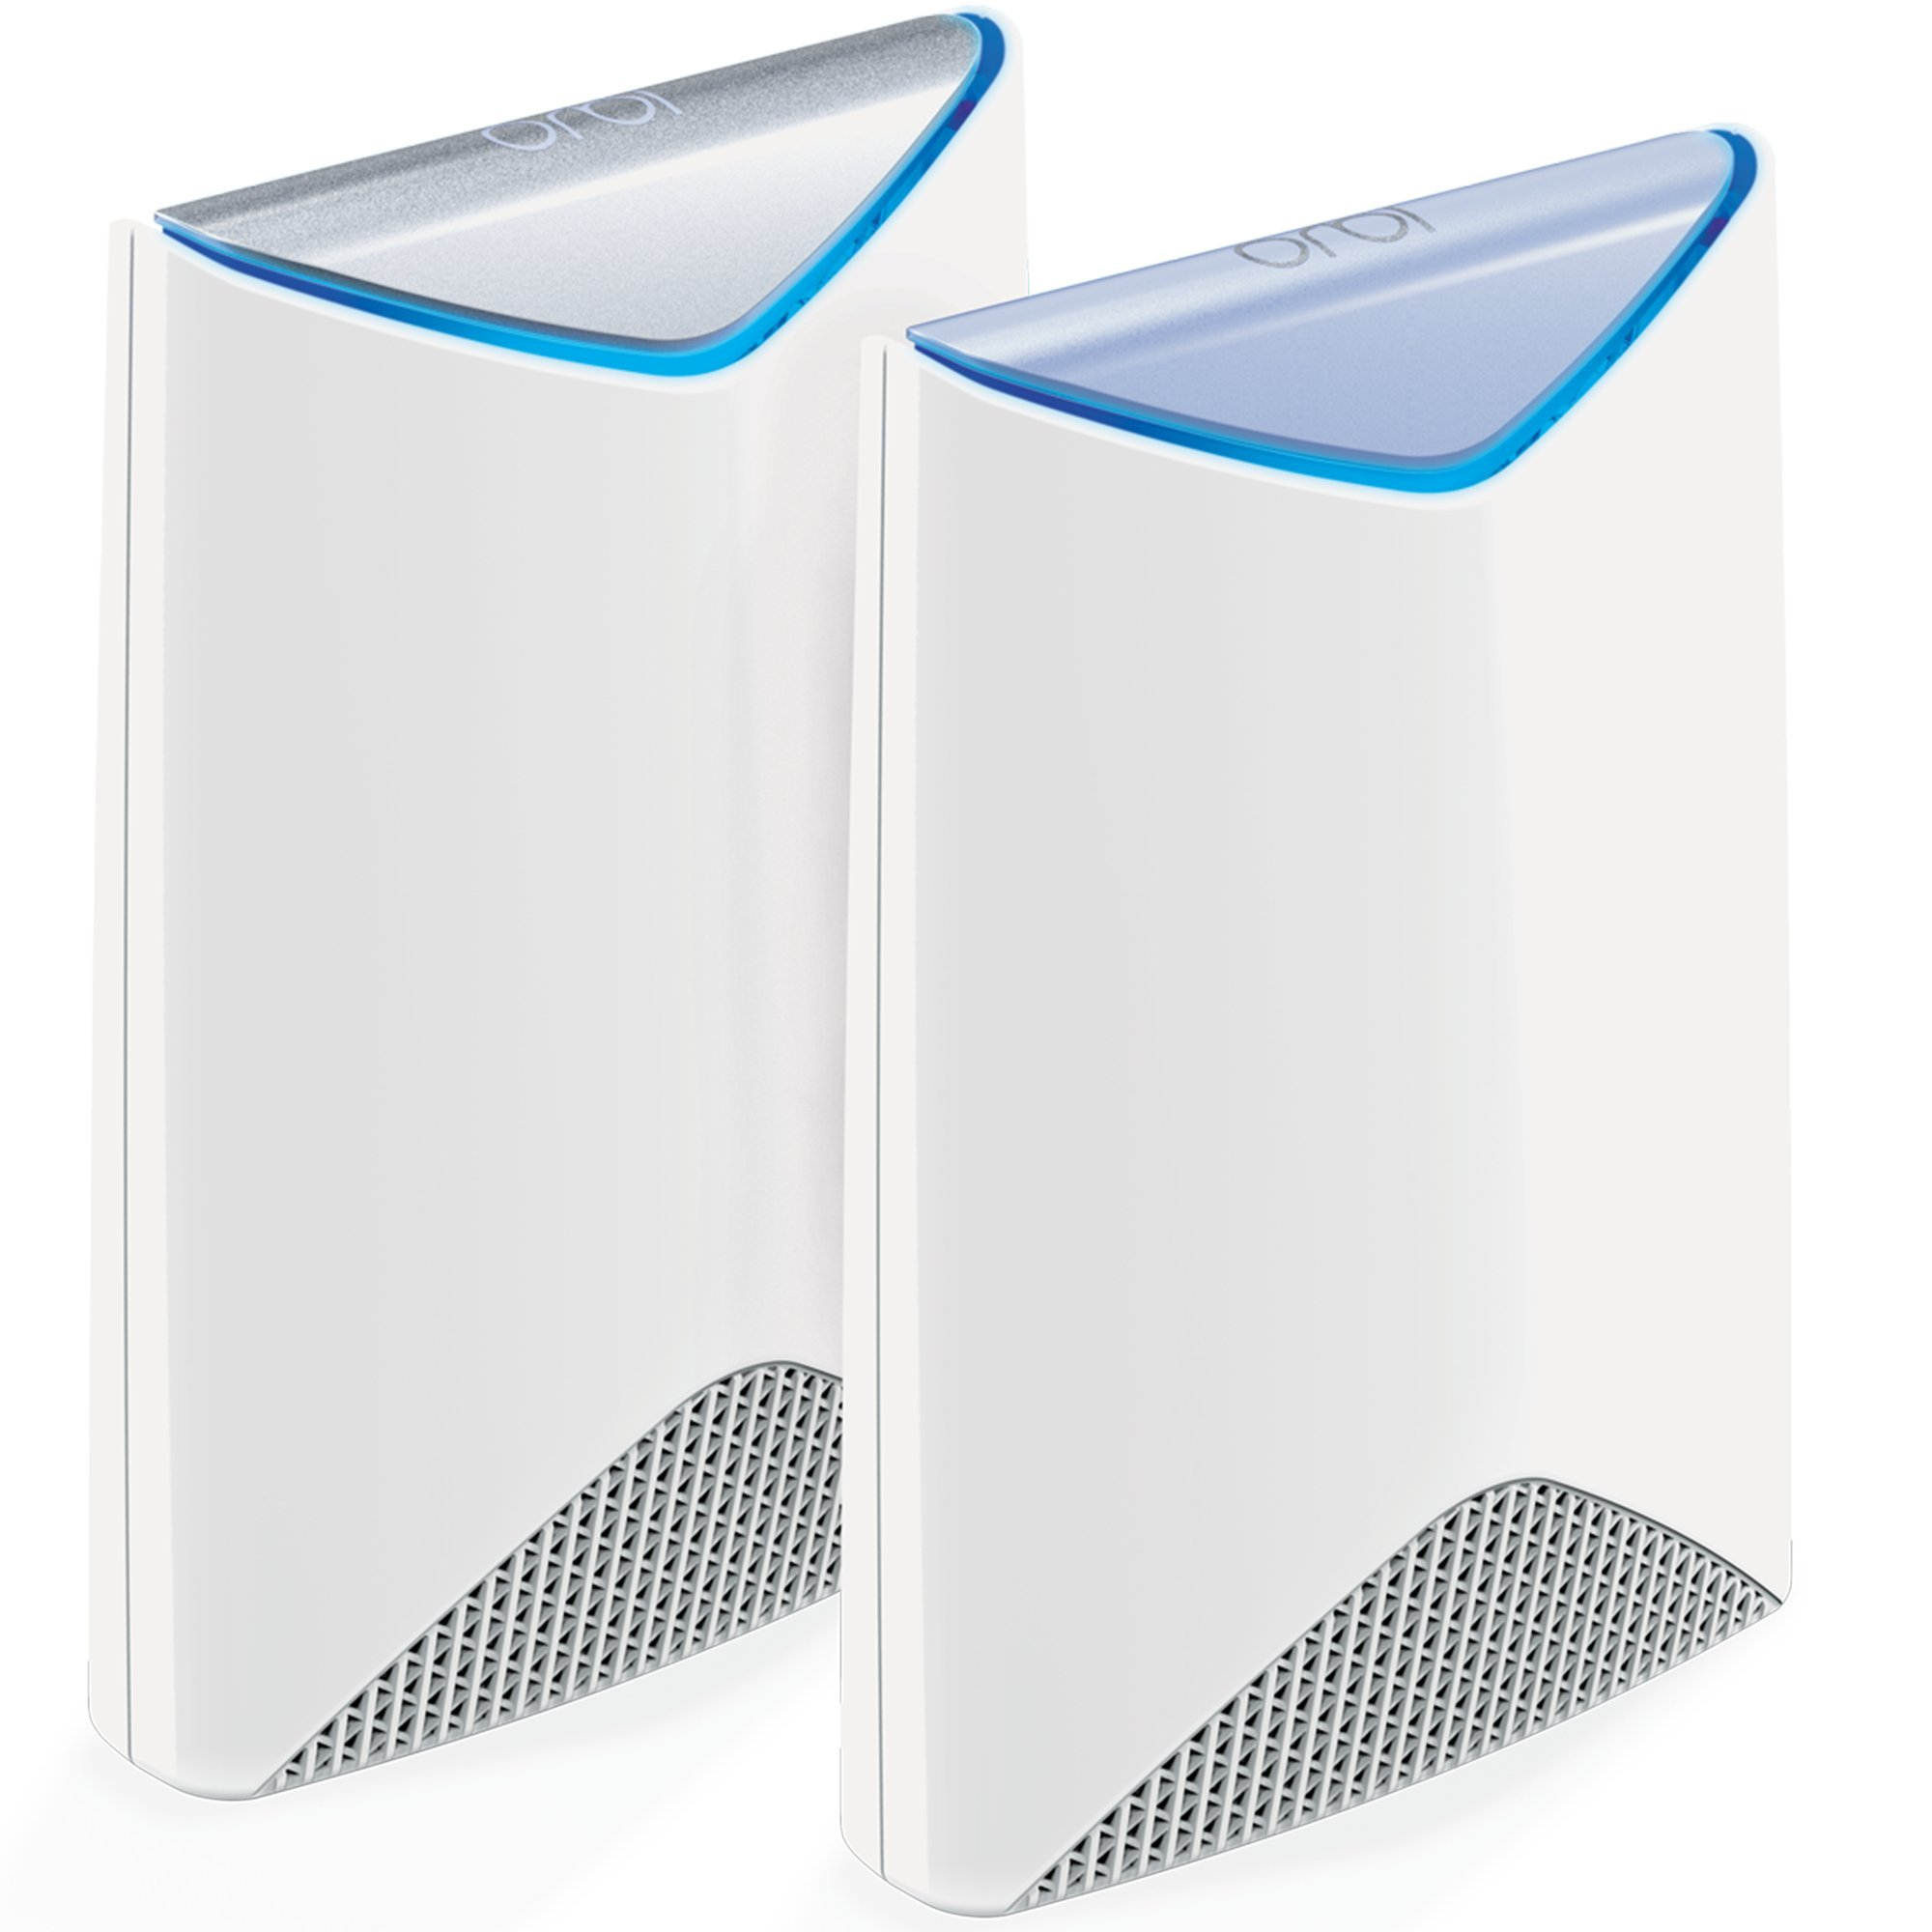 Orbi Pro by NETGEAR - AC3000 Tri-band WiFi System for Business 2-Pack | Covers up to 5,000 sqft | Replaces Access Points | No complicated wiring | Business Traffic & Network Separation (SRK60)